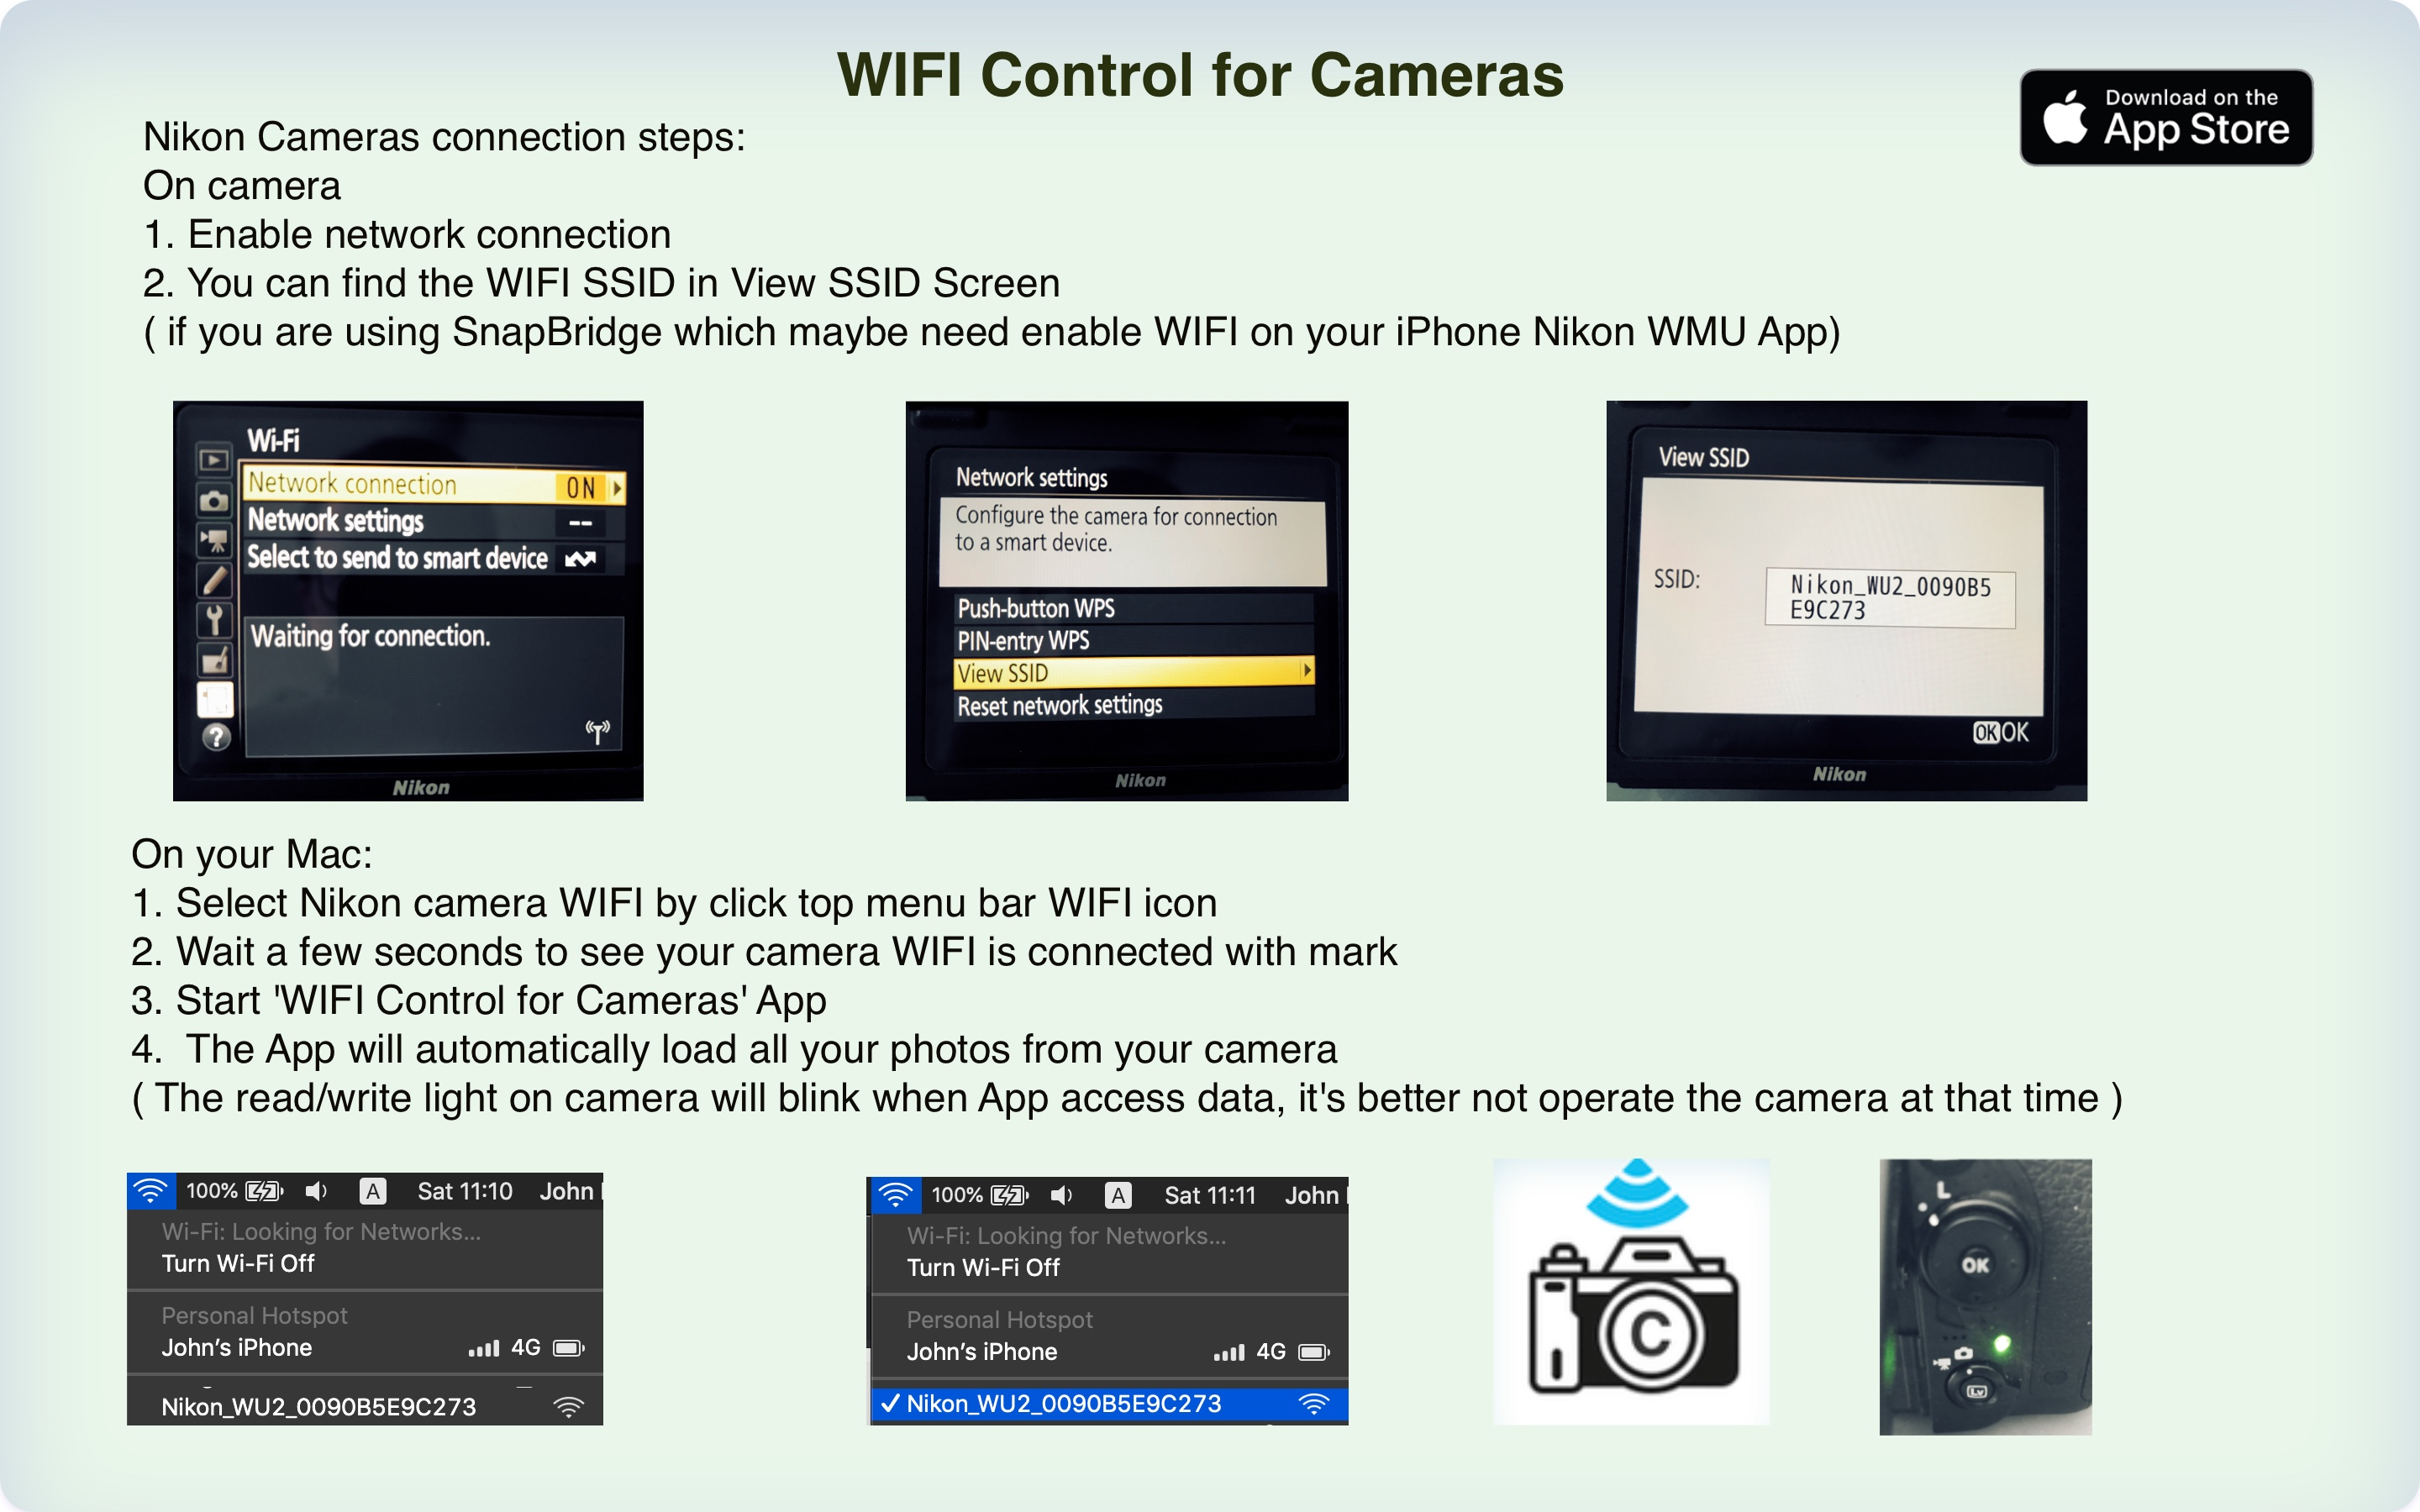 WIFI Control for Cameras  ( Nikon WIFI connection steps )